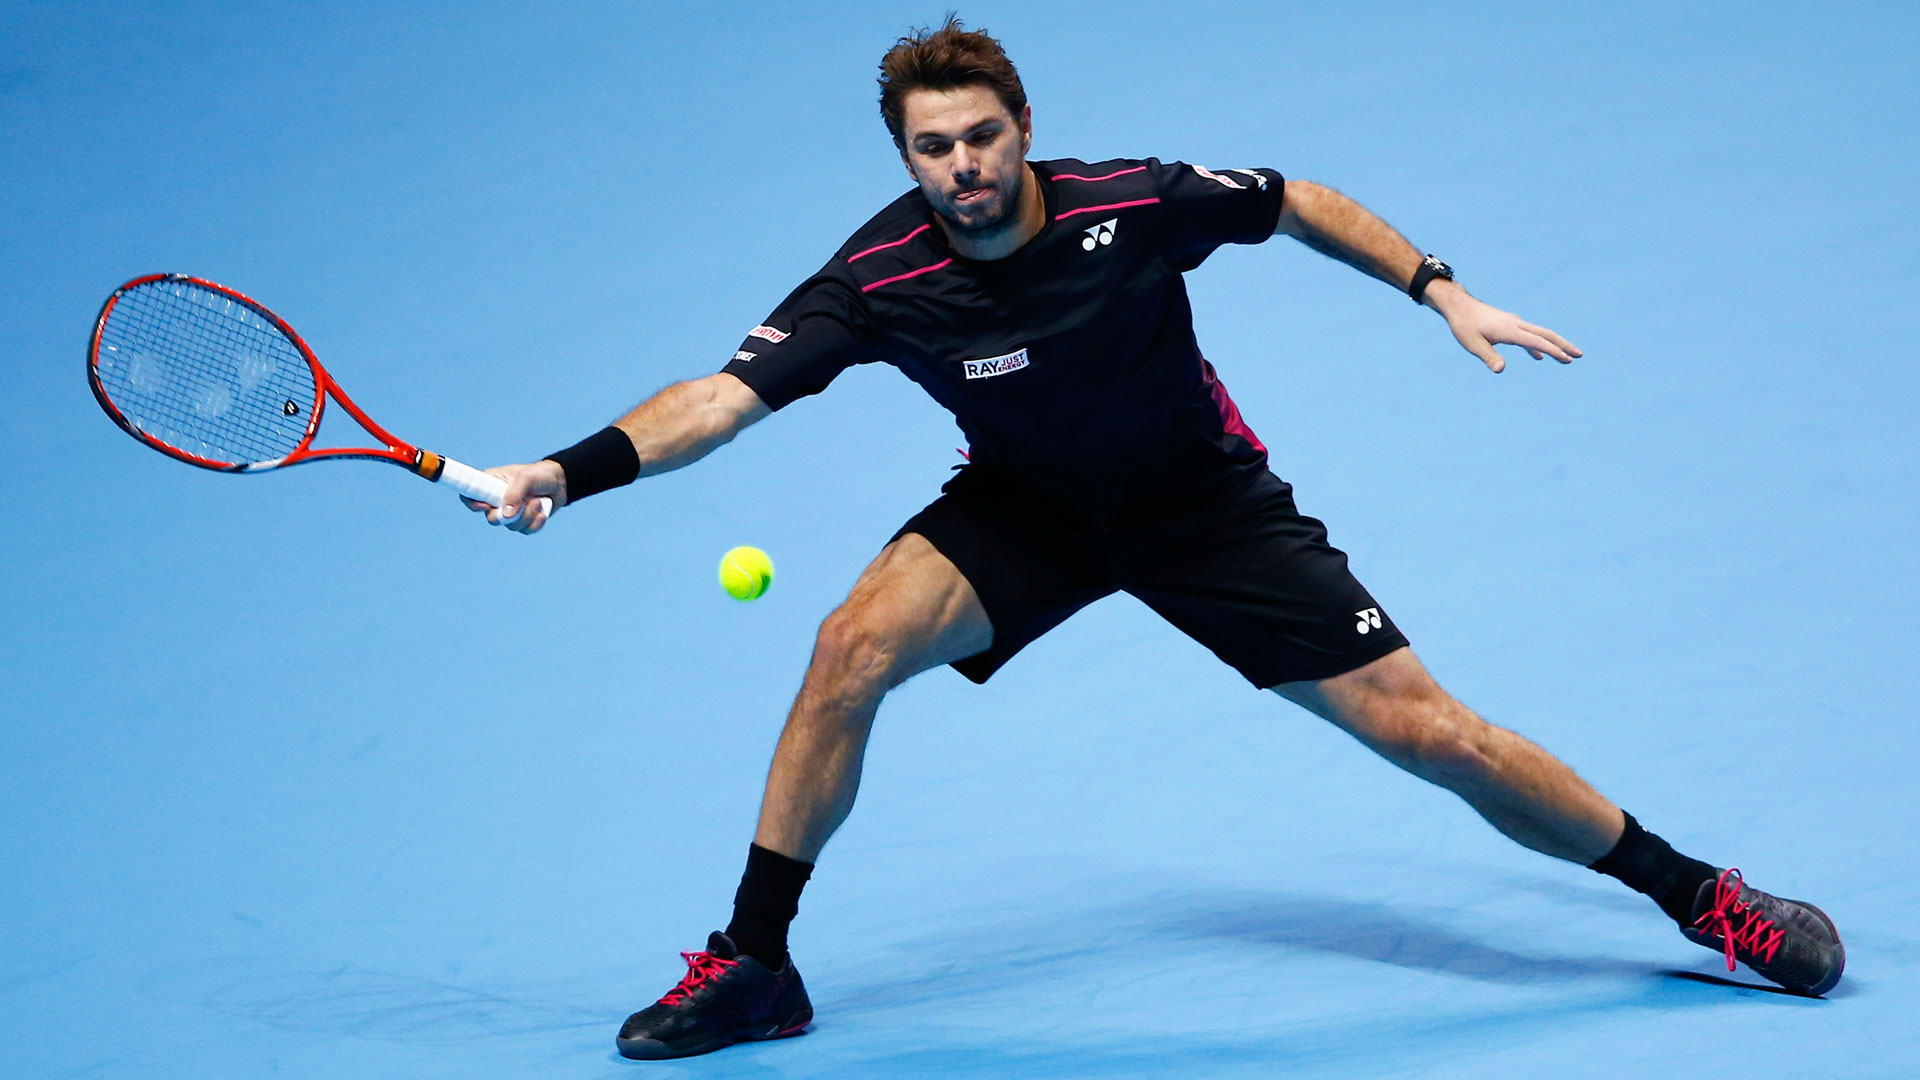 Top 10 Tennis Players in 2017 4